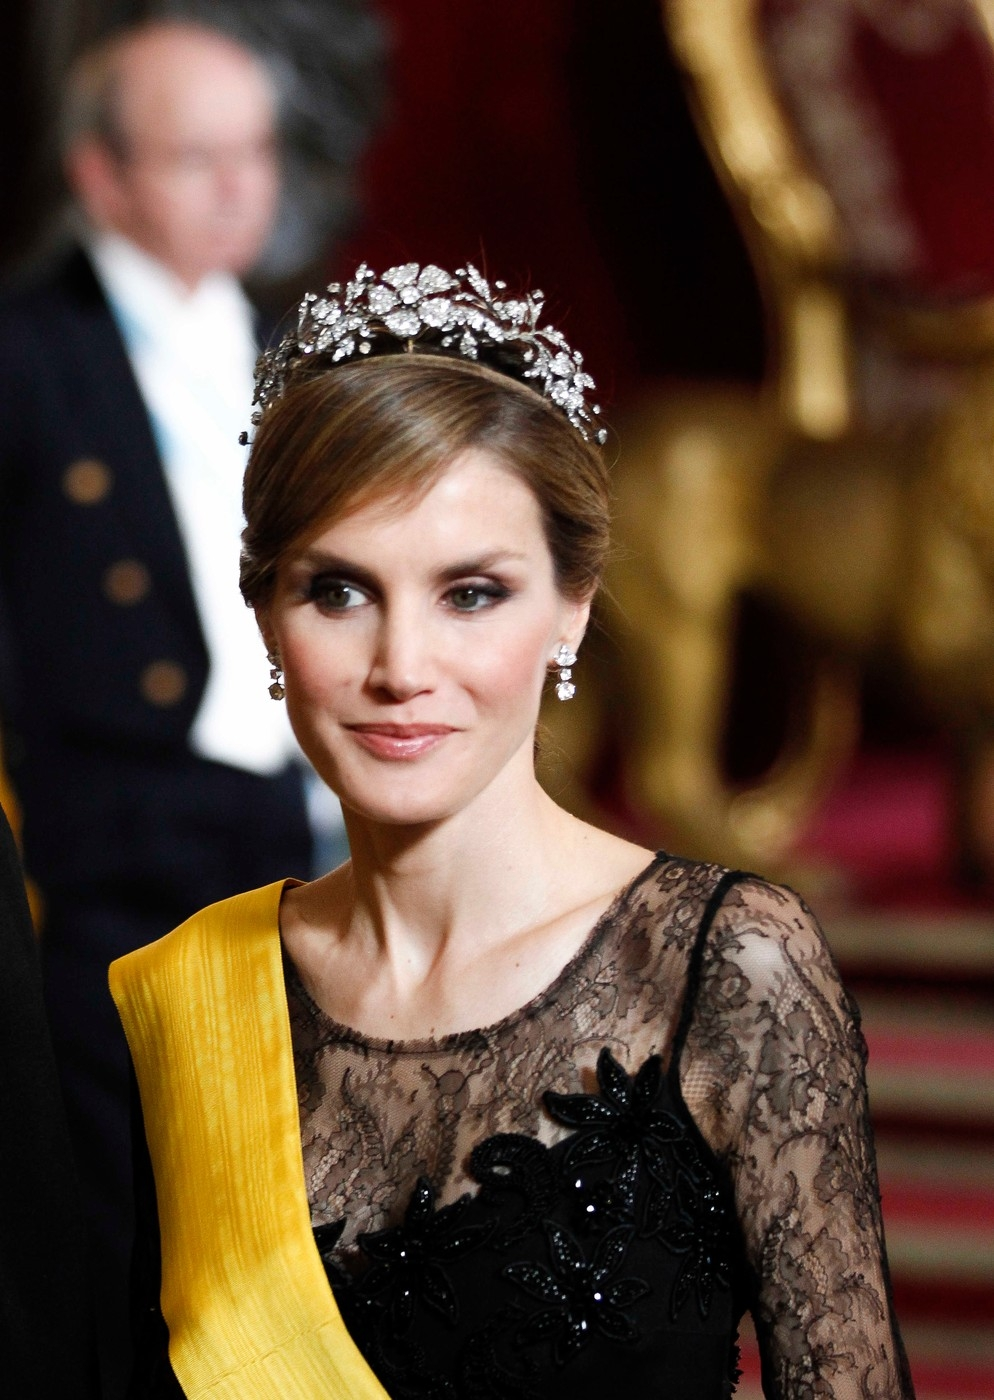 King juan Carlos I of Spain, Queen Sofia of Spain and Spanish Asturias Princes Felipe and Letizia give a Gala Dinner to the Unite States Mexican Prime